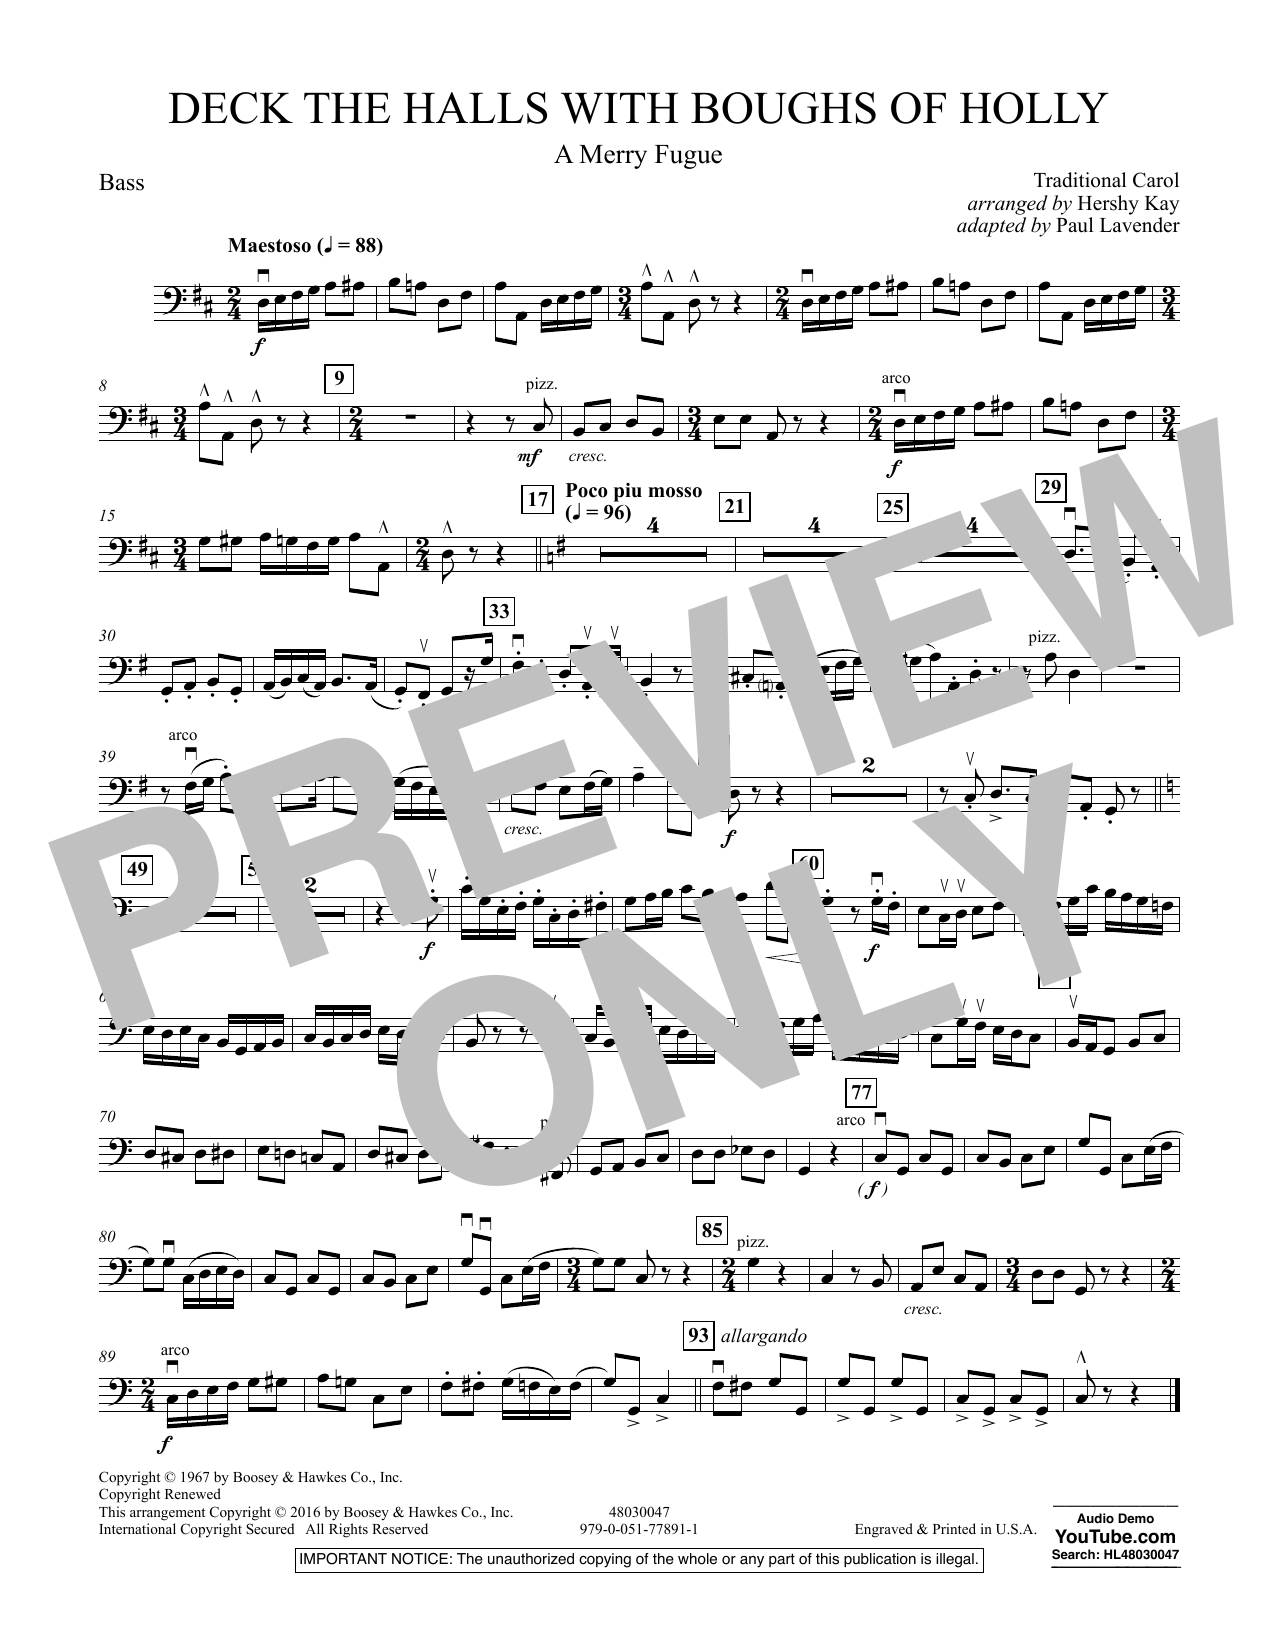 Deck the Halls with Boughs of Holly (A Merry Fugue) - Bass